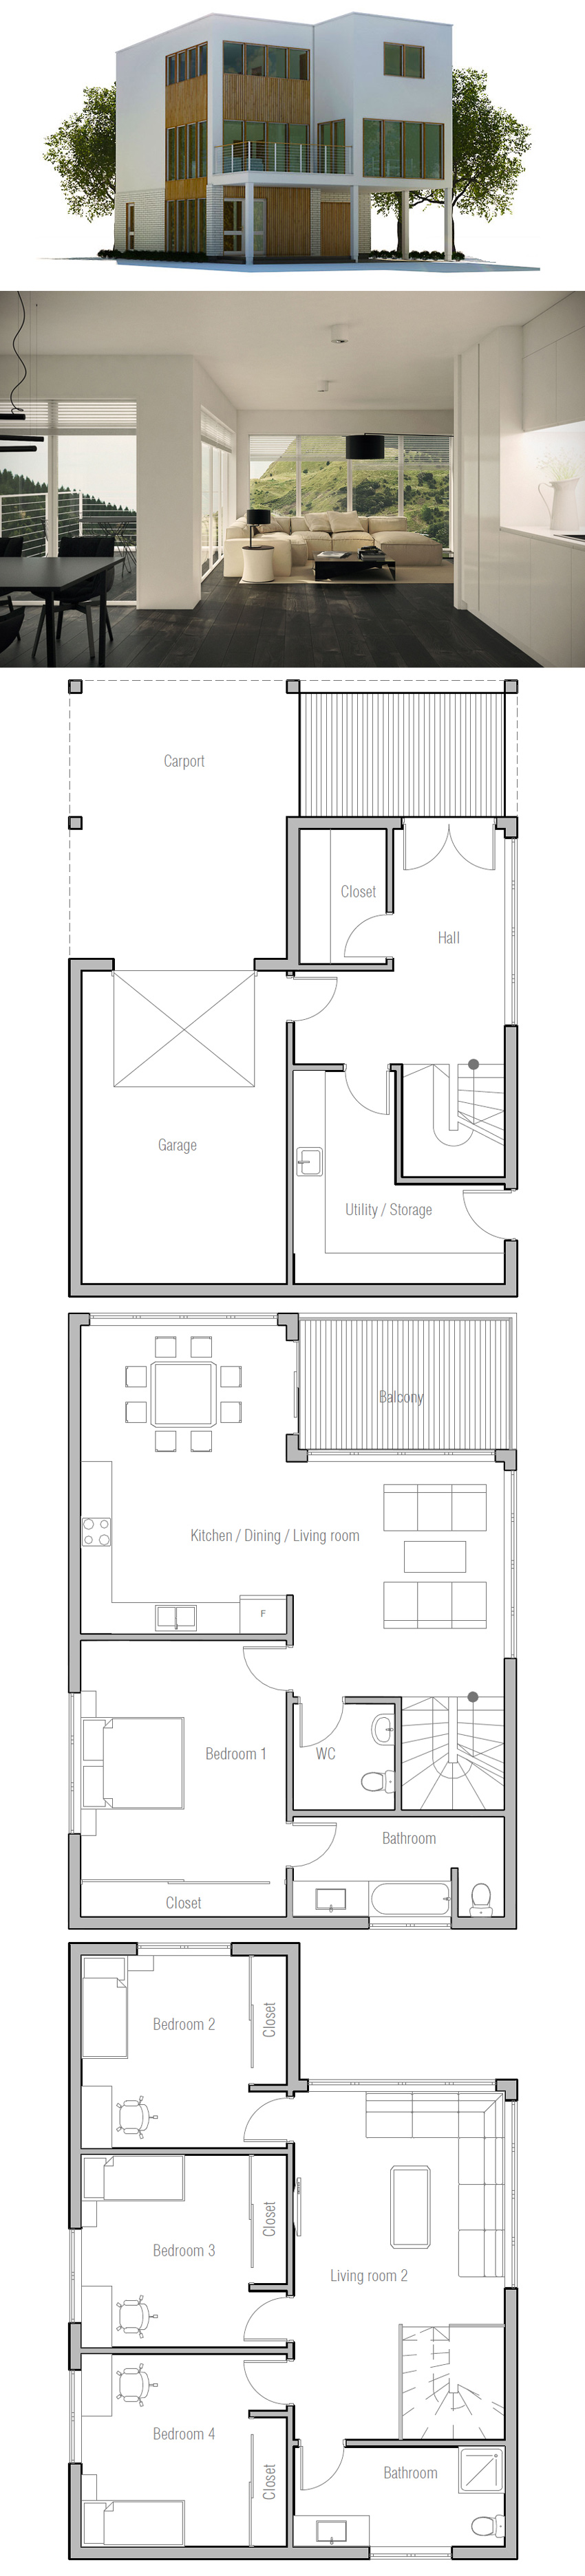 Maison minimaliste home plans pinterest for Maison cubique minimaliste